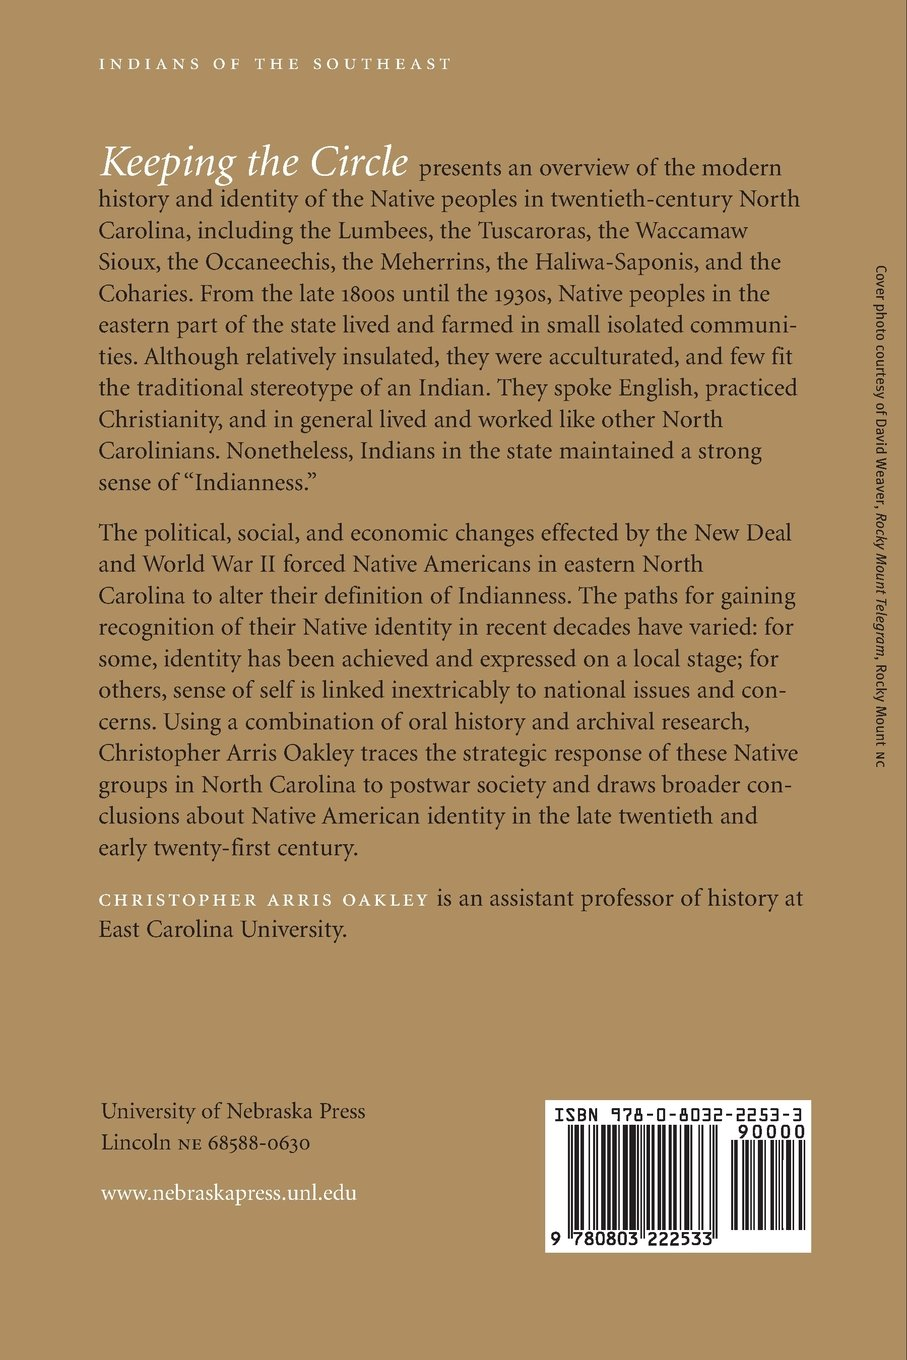 Keeping the circle american indian identity in eastern north keeping the circle american indian identity in eastern north carolina 1885 2004 indians of the southeast christopher arris oakley 9780803222533 fandeluxe Image collections